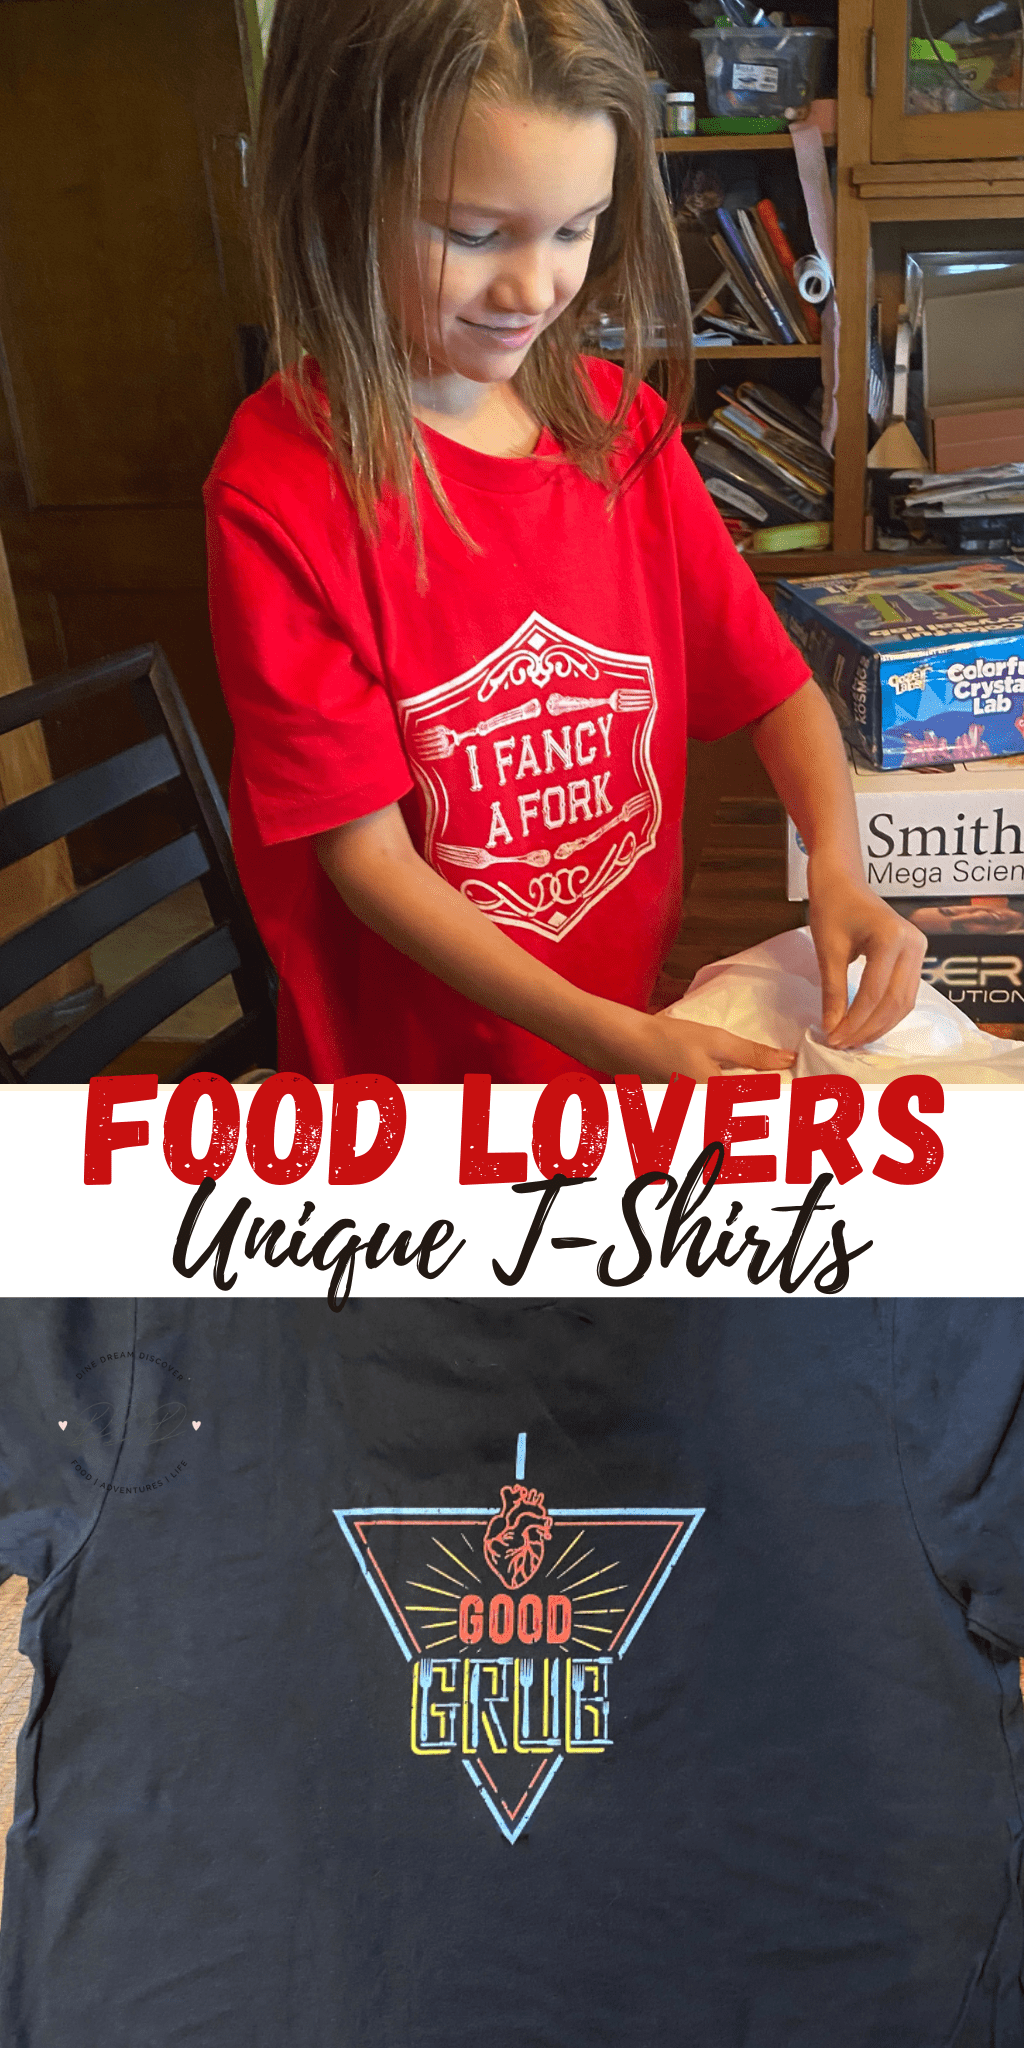 Unique Graphic T-Shirts for Food Lovers